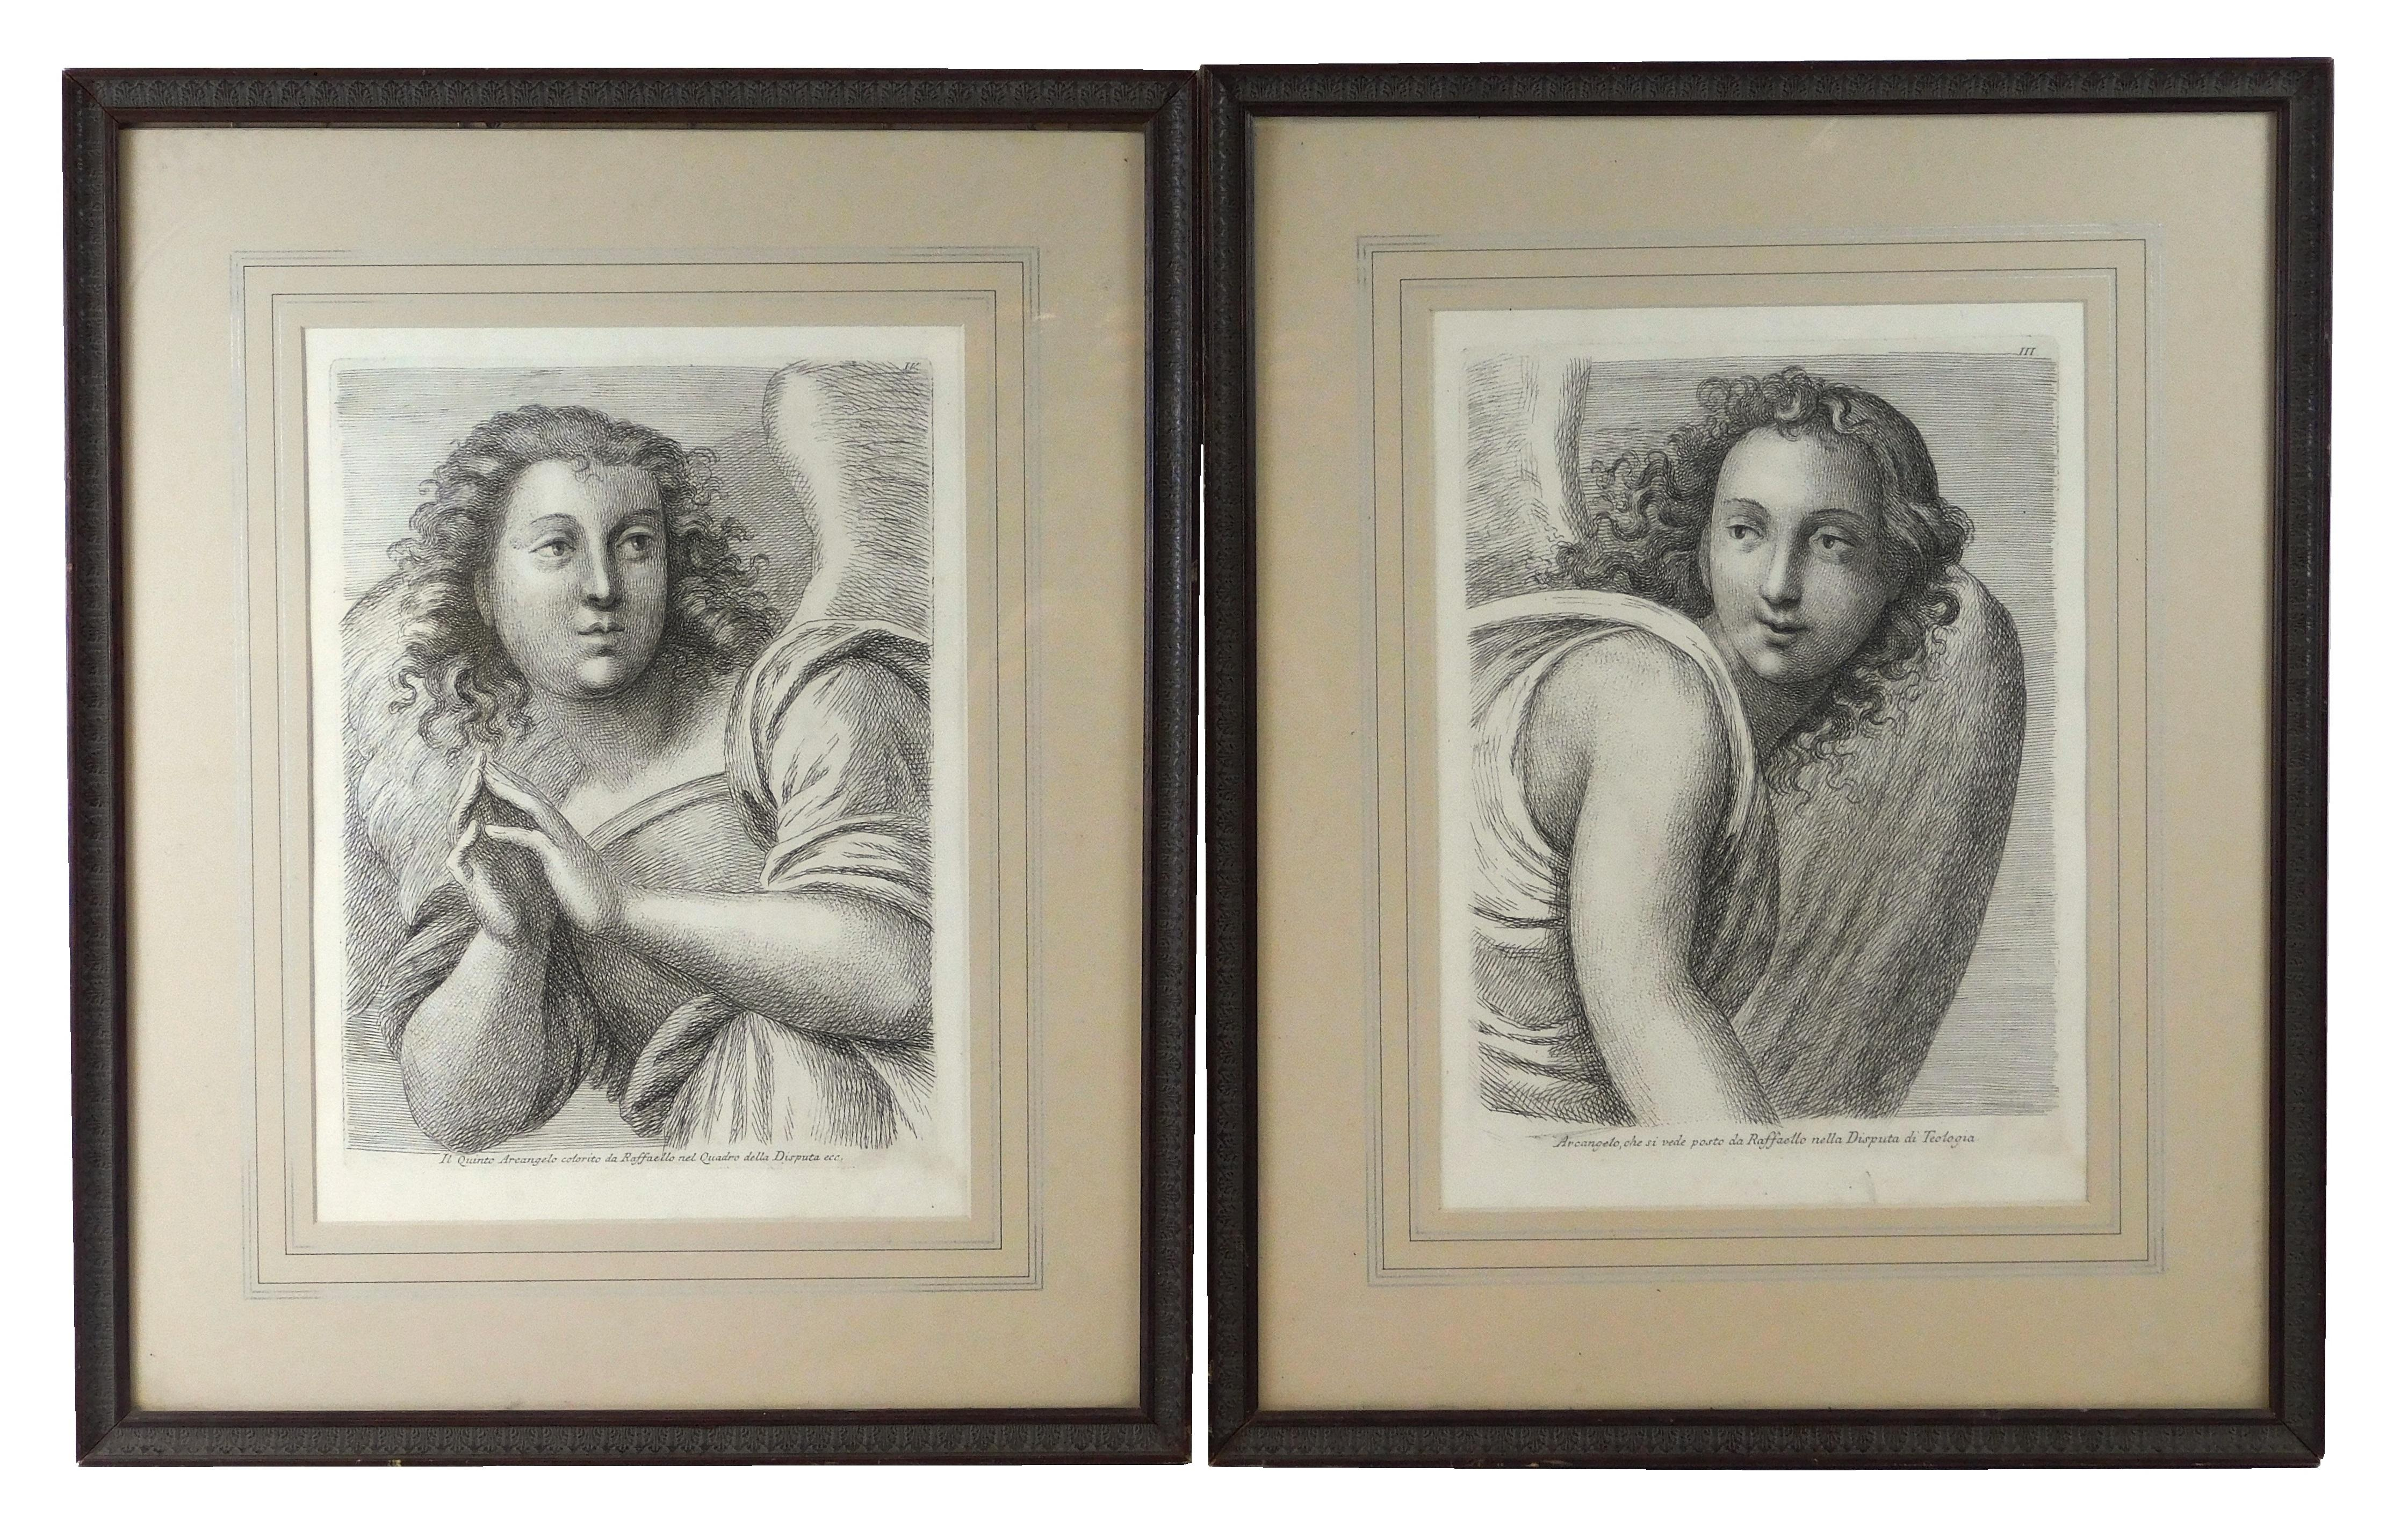 Paulo Fidanza (Italy, 18th C.), two engravings of archangels, both are depicted from the waist up in a tight composition with wings...